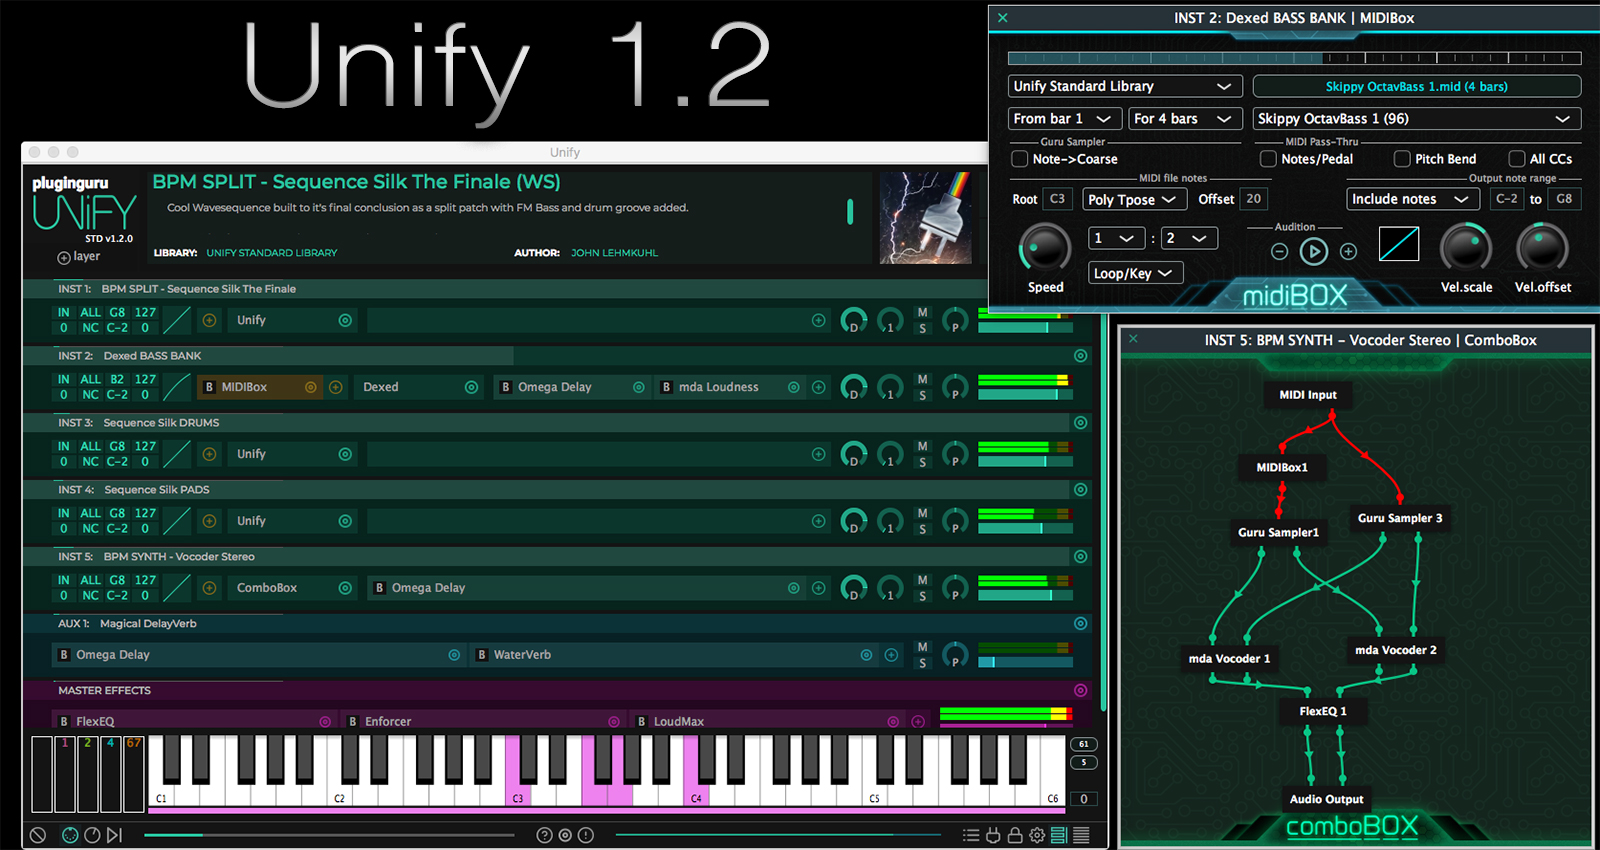 Unify 1.2 Interface with MIDIBox and ComboBox